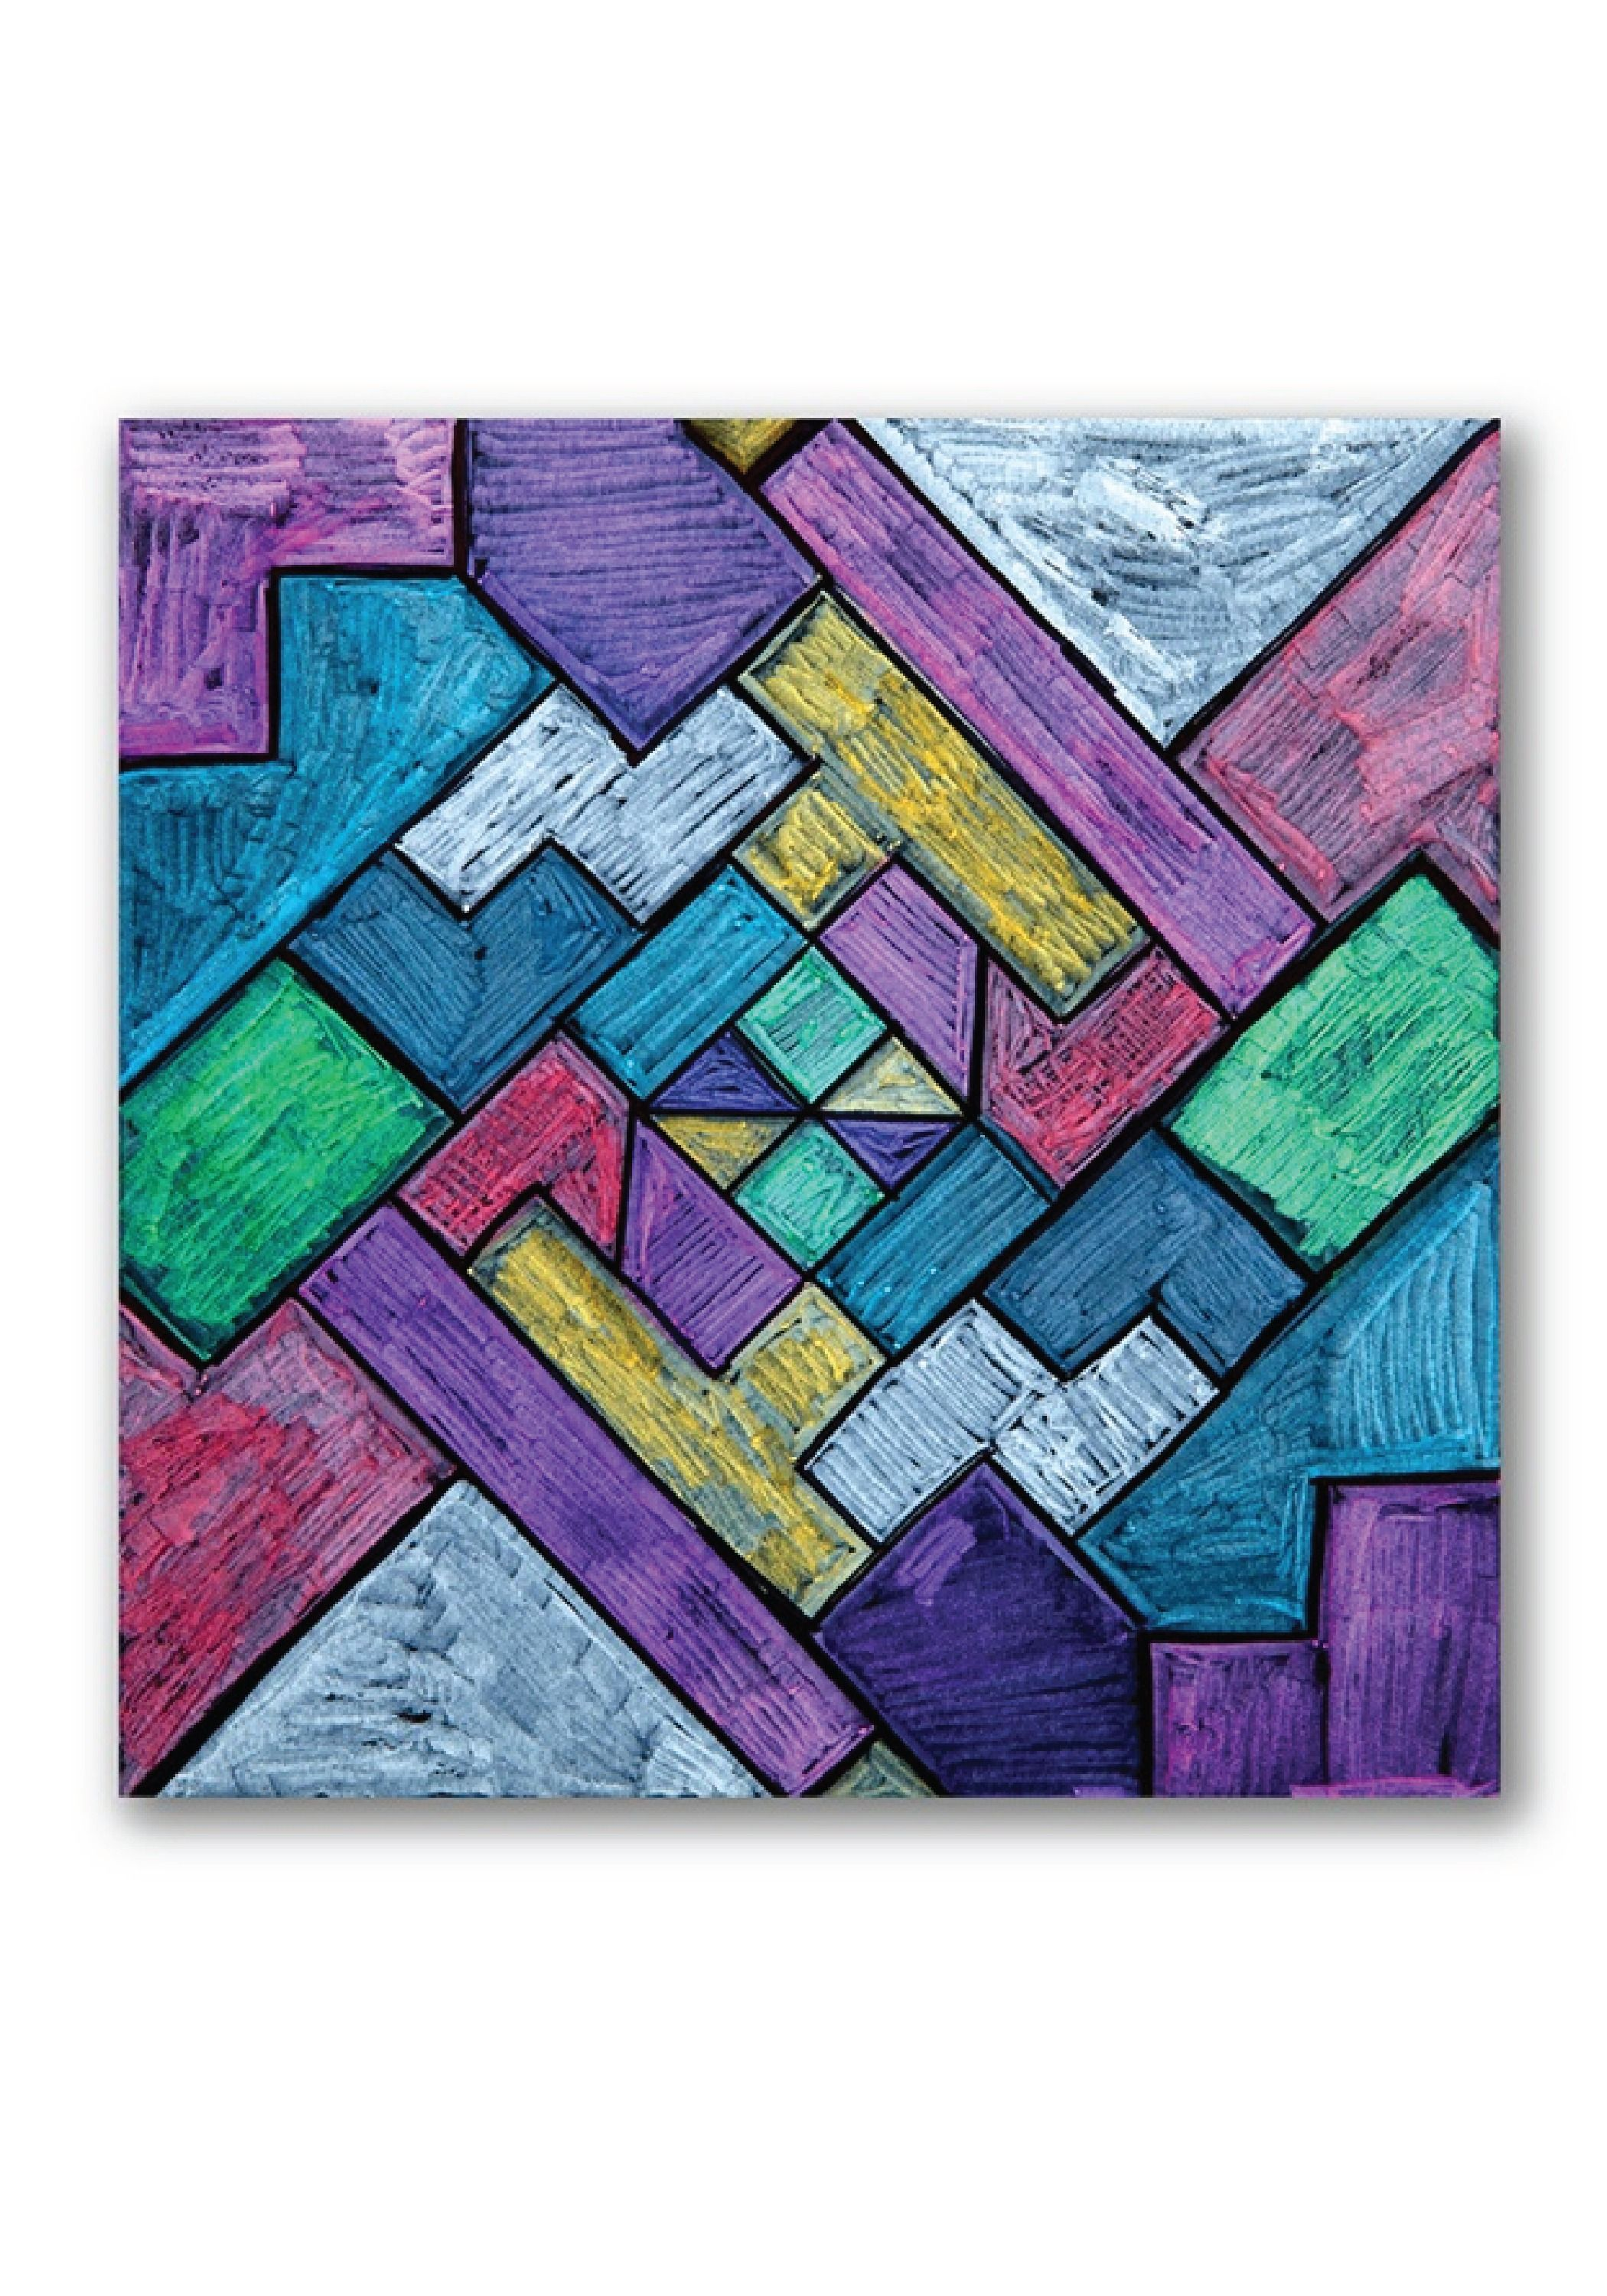 Explore Angles And Two Dimensional Shapes While Creating A Beautiful Custom Stained Glass Image